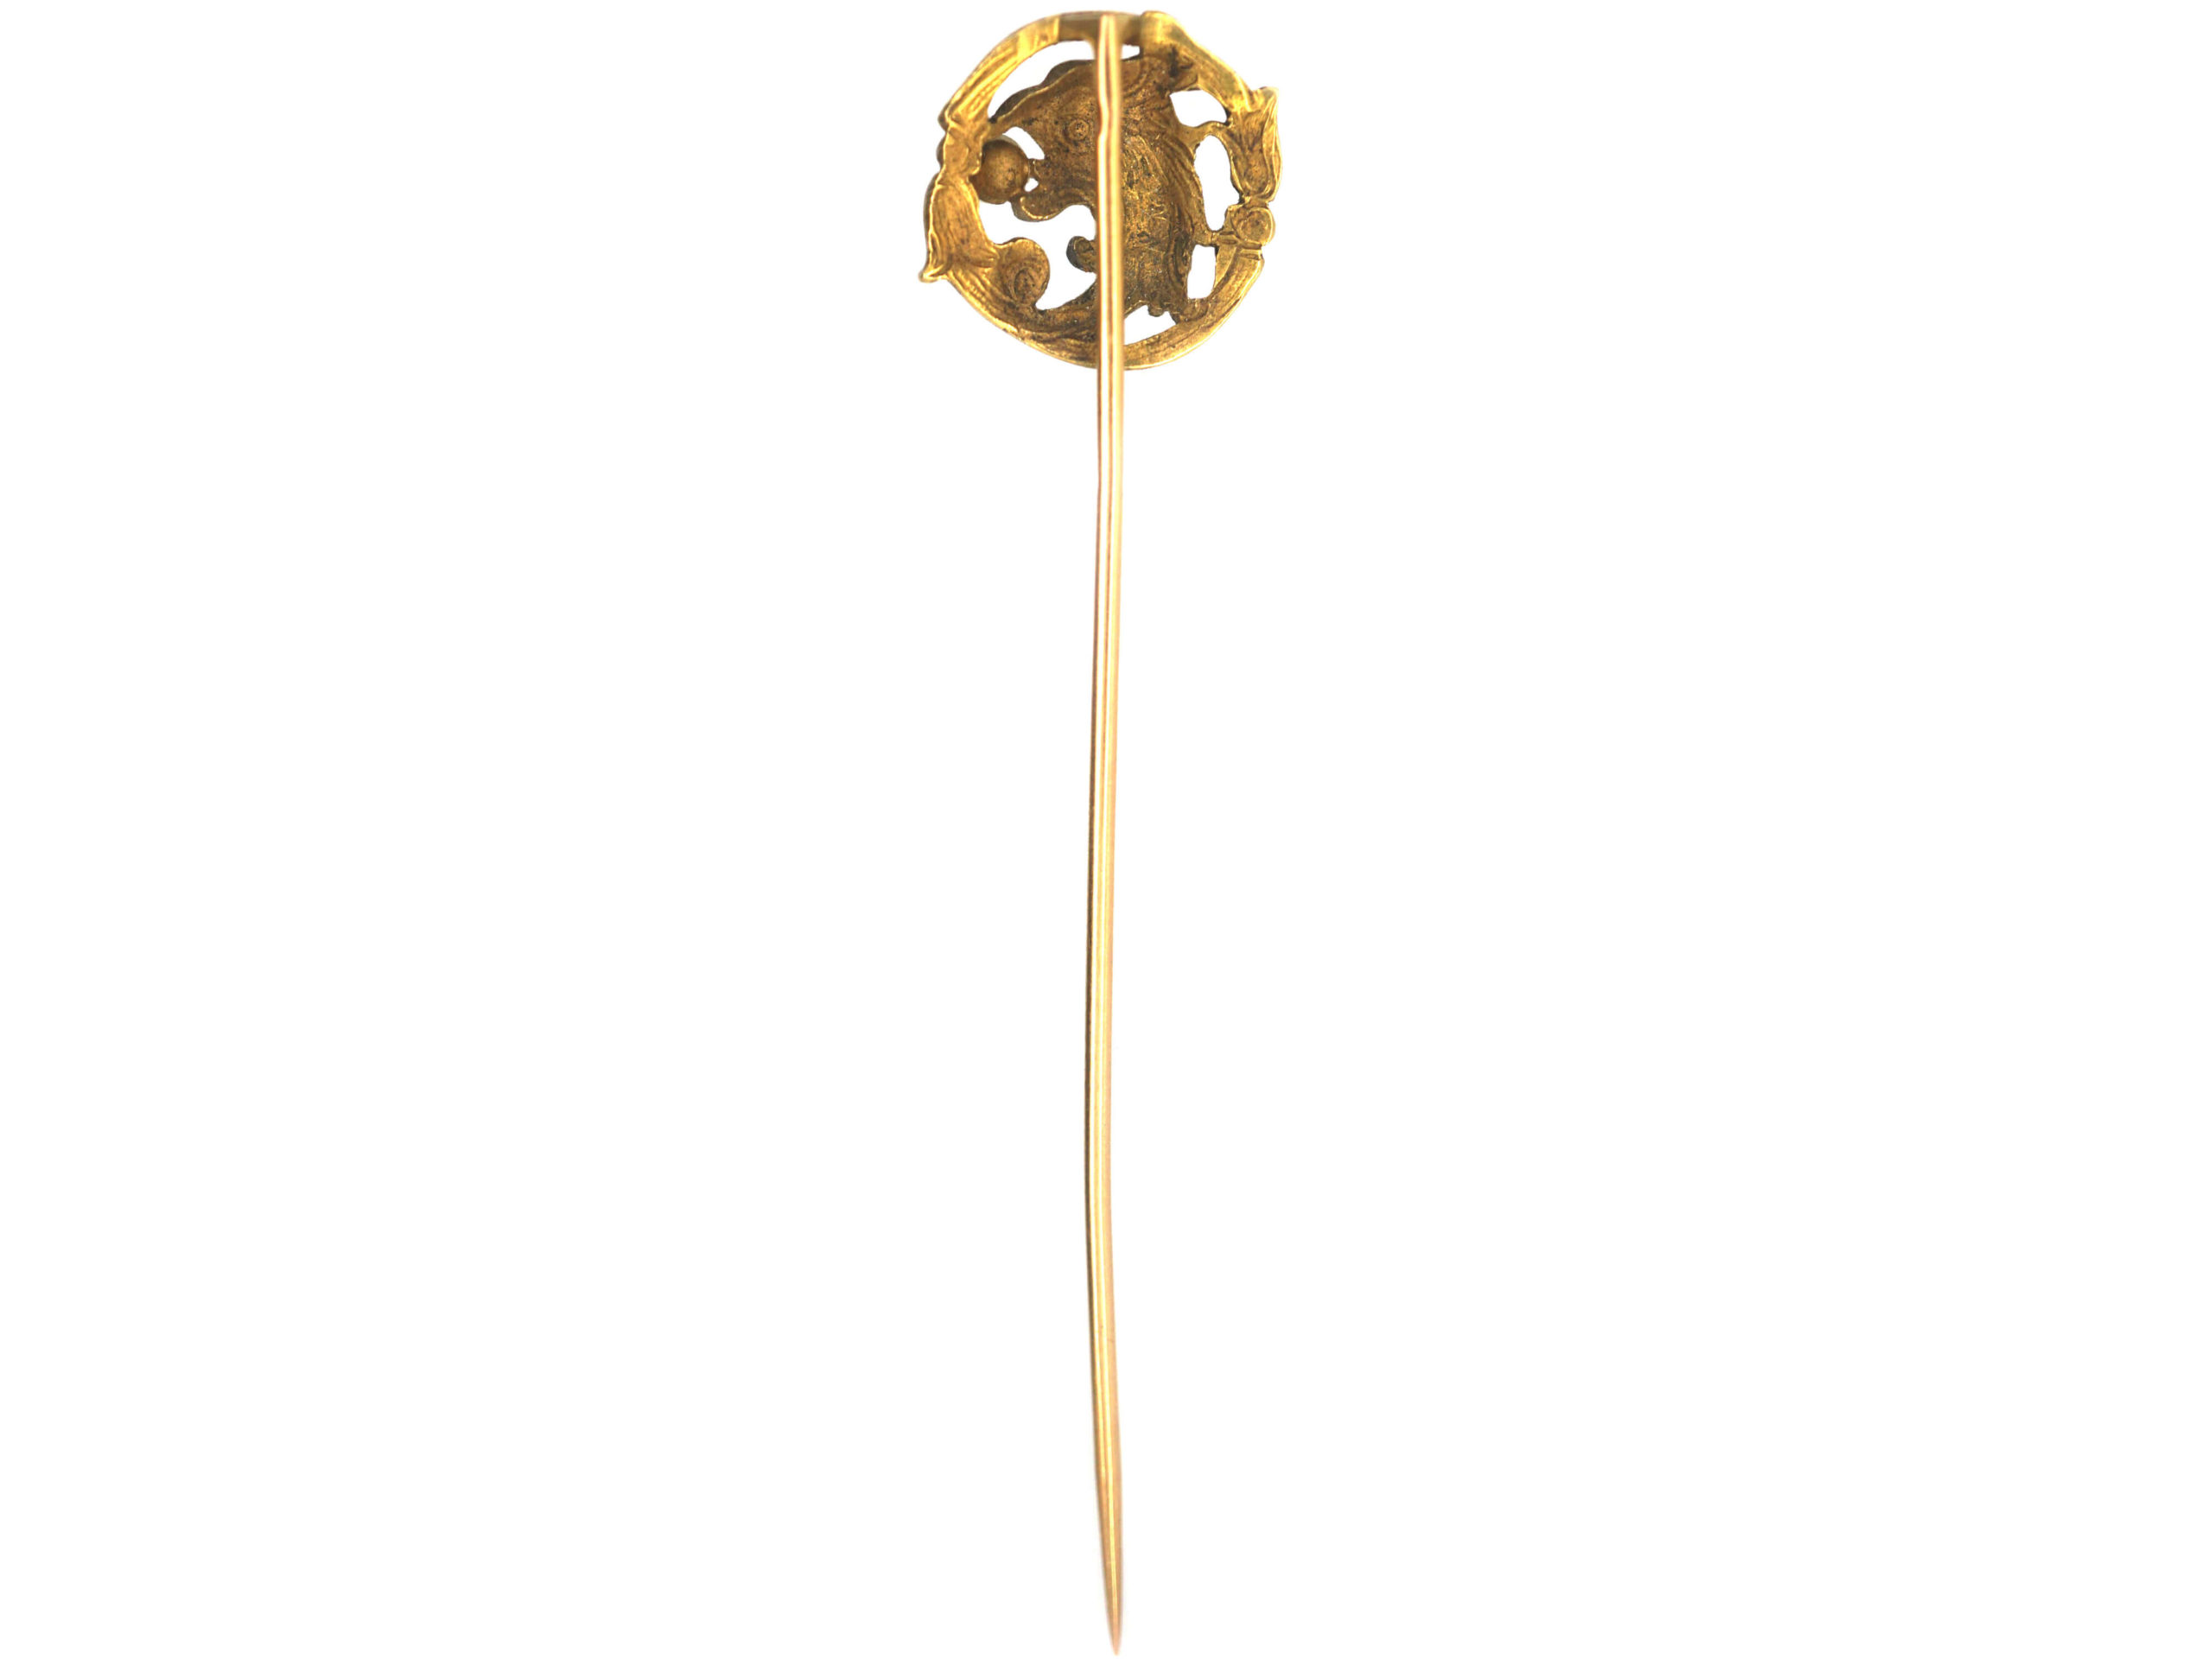 French 18ct Gold Griffin Tie Pin with a Natural Pearl in its Beak